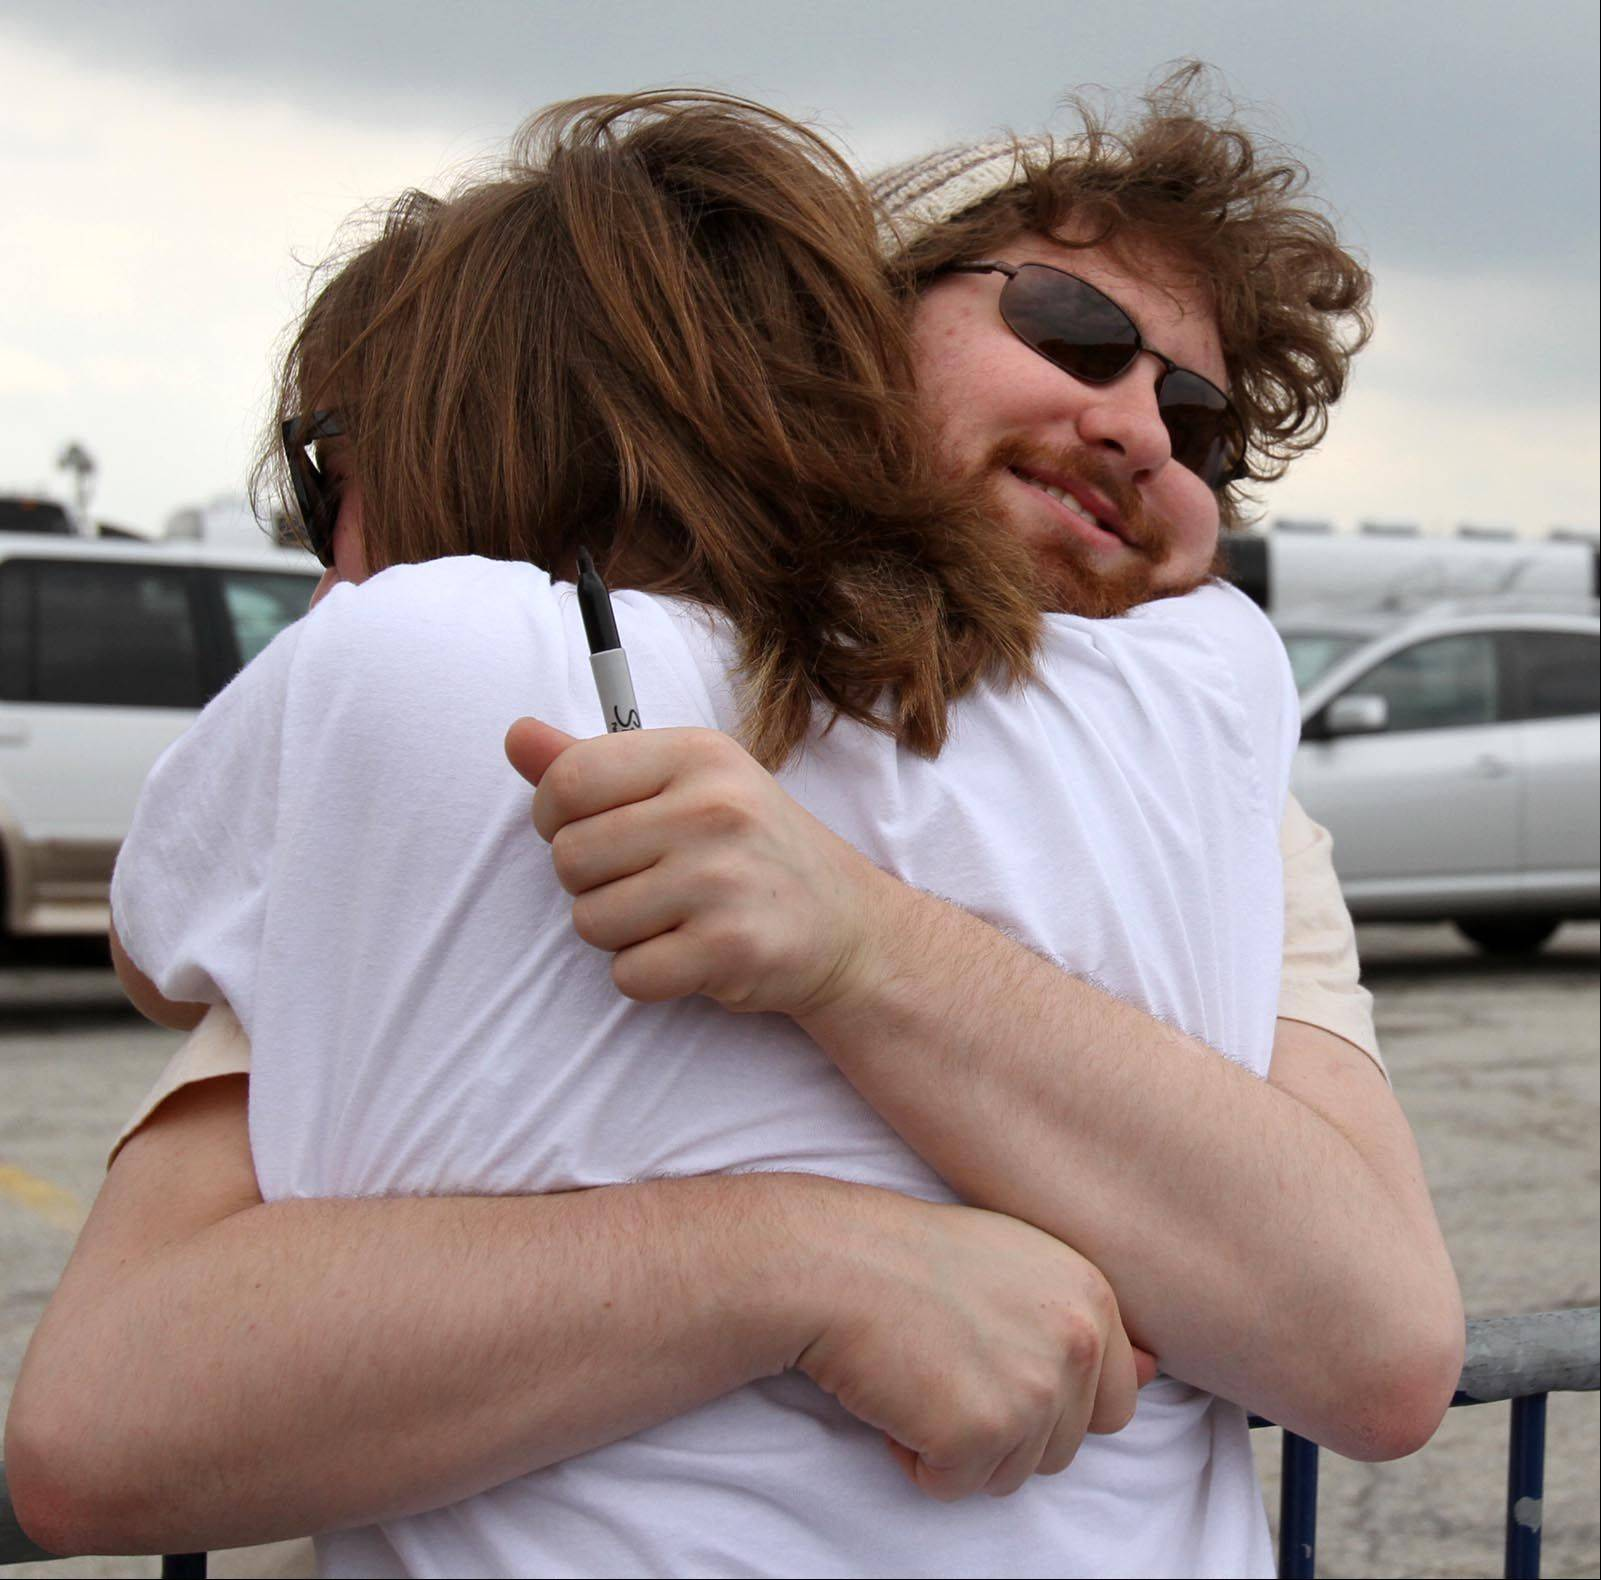 Angela Rublaitus, 13, of Hoffman Estates, gets a hug from Casey Abrams before the American Idol concert.